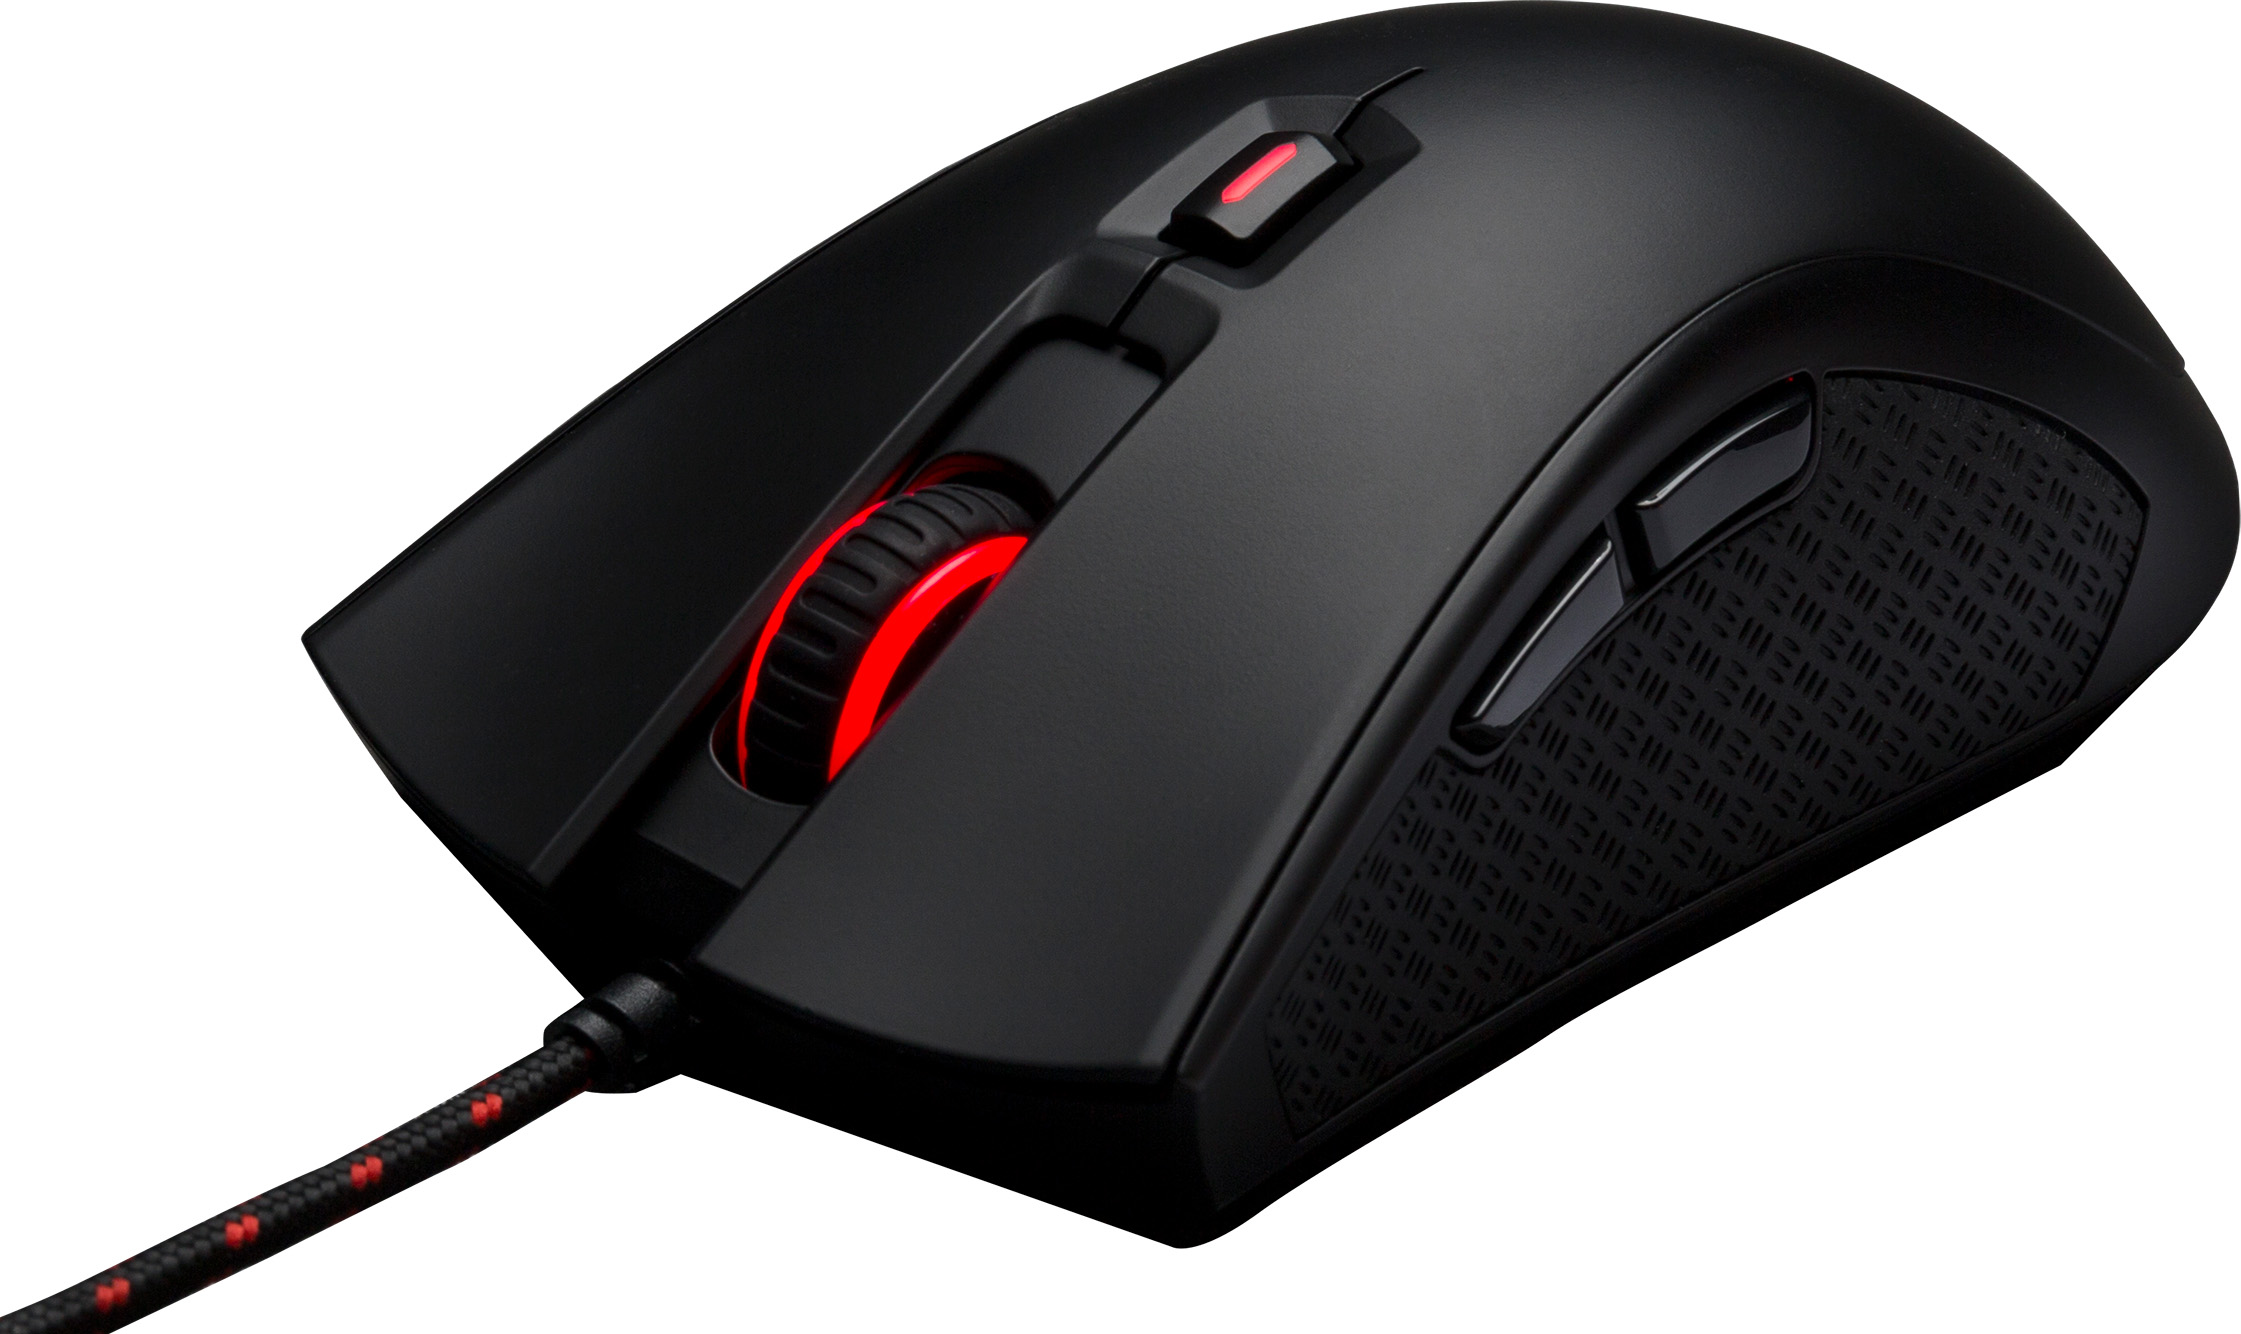 RE1A3Bv?ver=3c06 - Kingston HyperX Pulsefire FPS Gaming Mouse